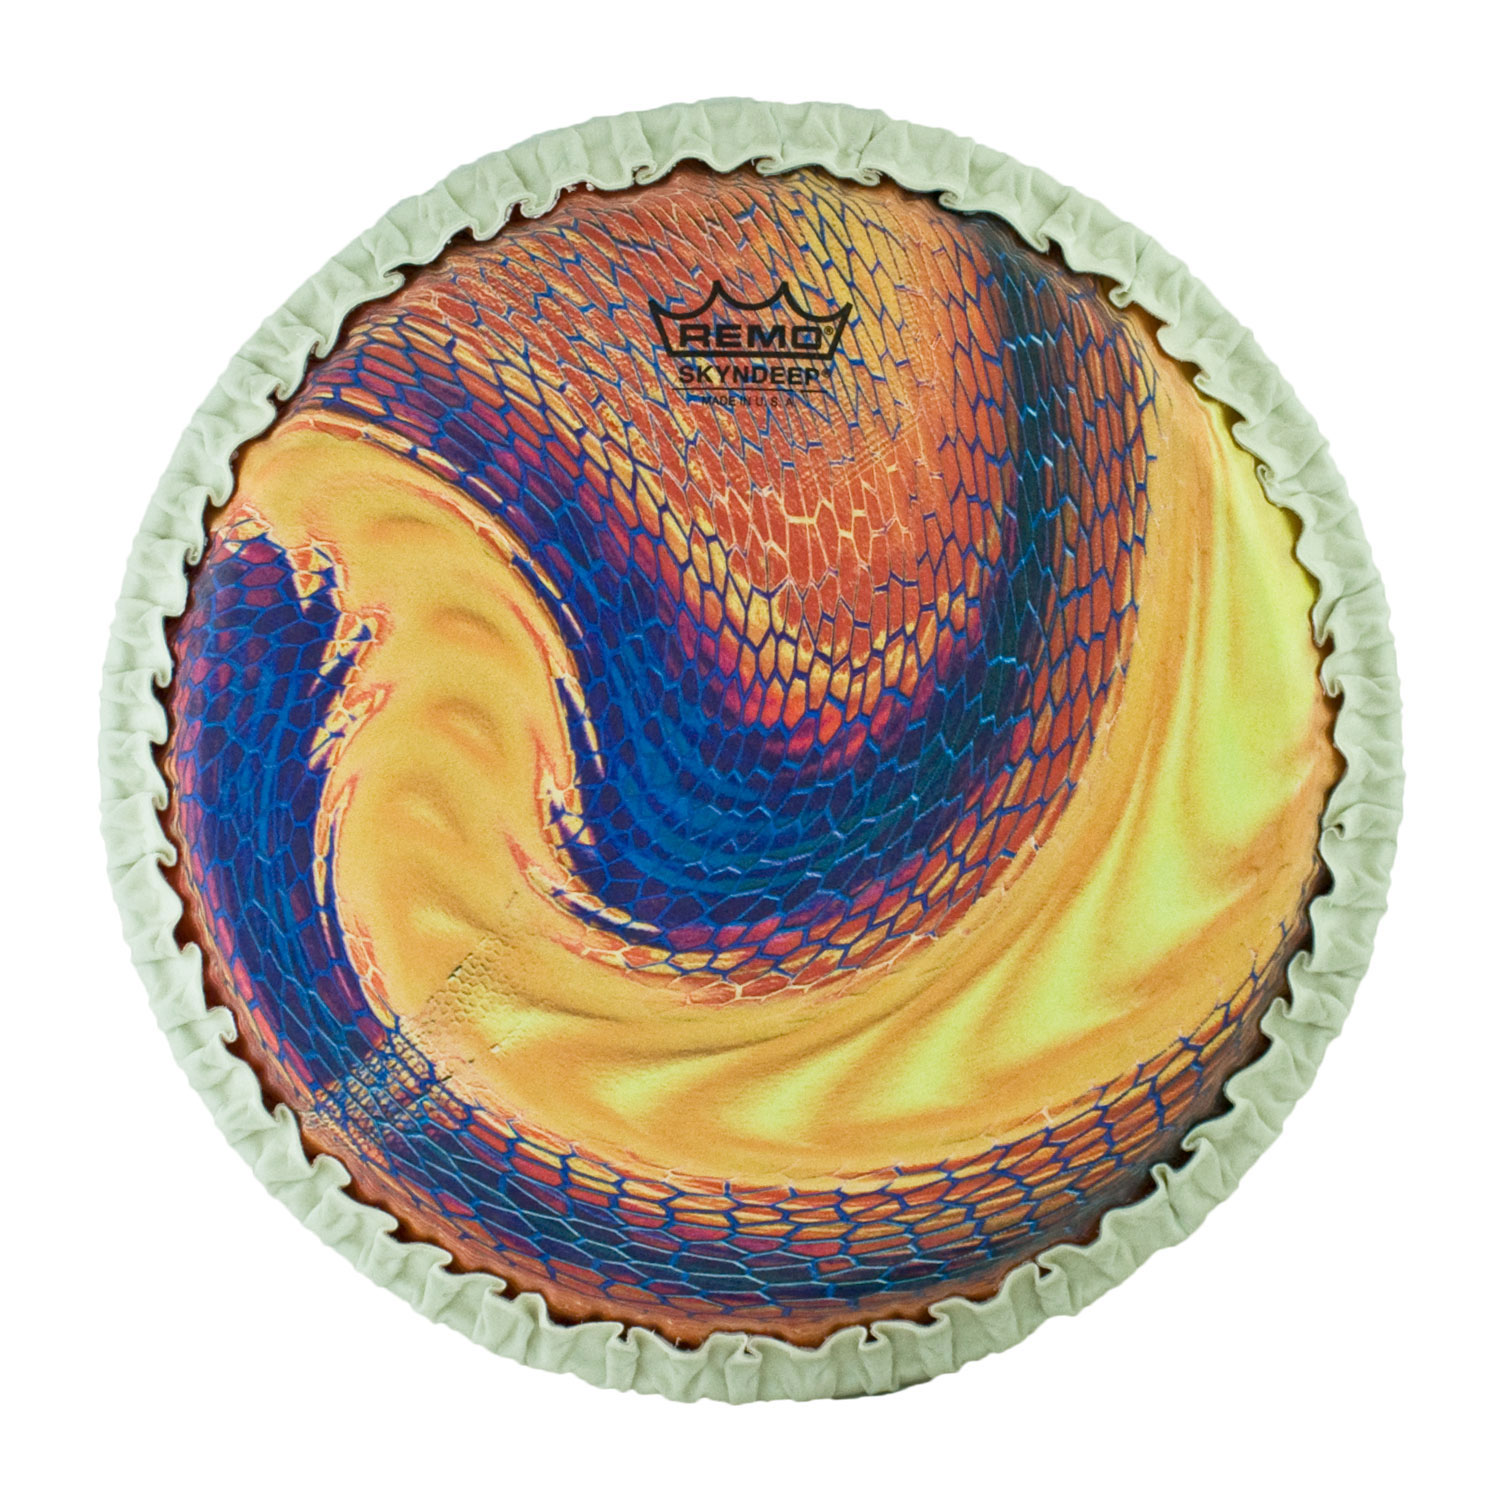 "Remo 13"" Tucked Skyndeep Conga Drum Head with Serpentine Day Graphic"